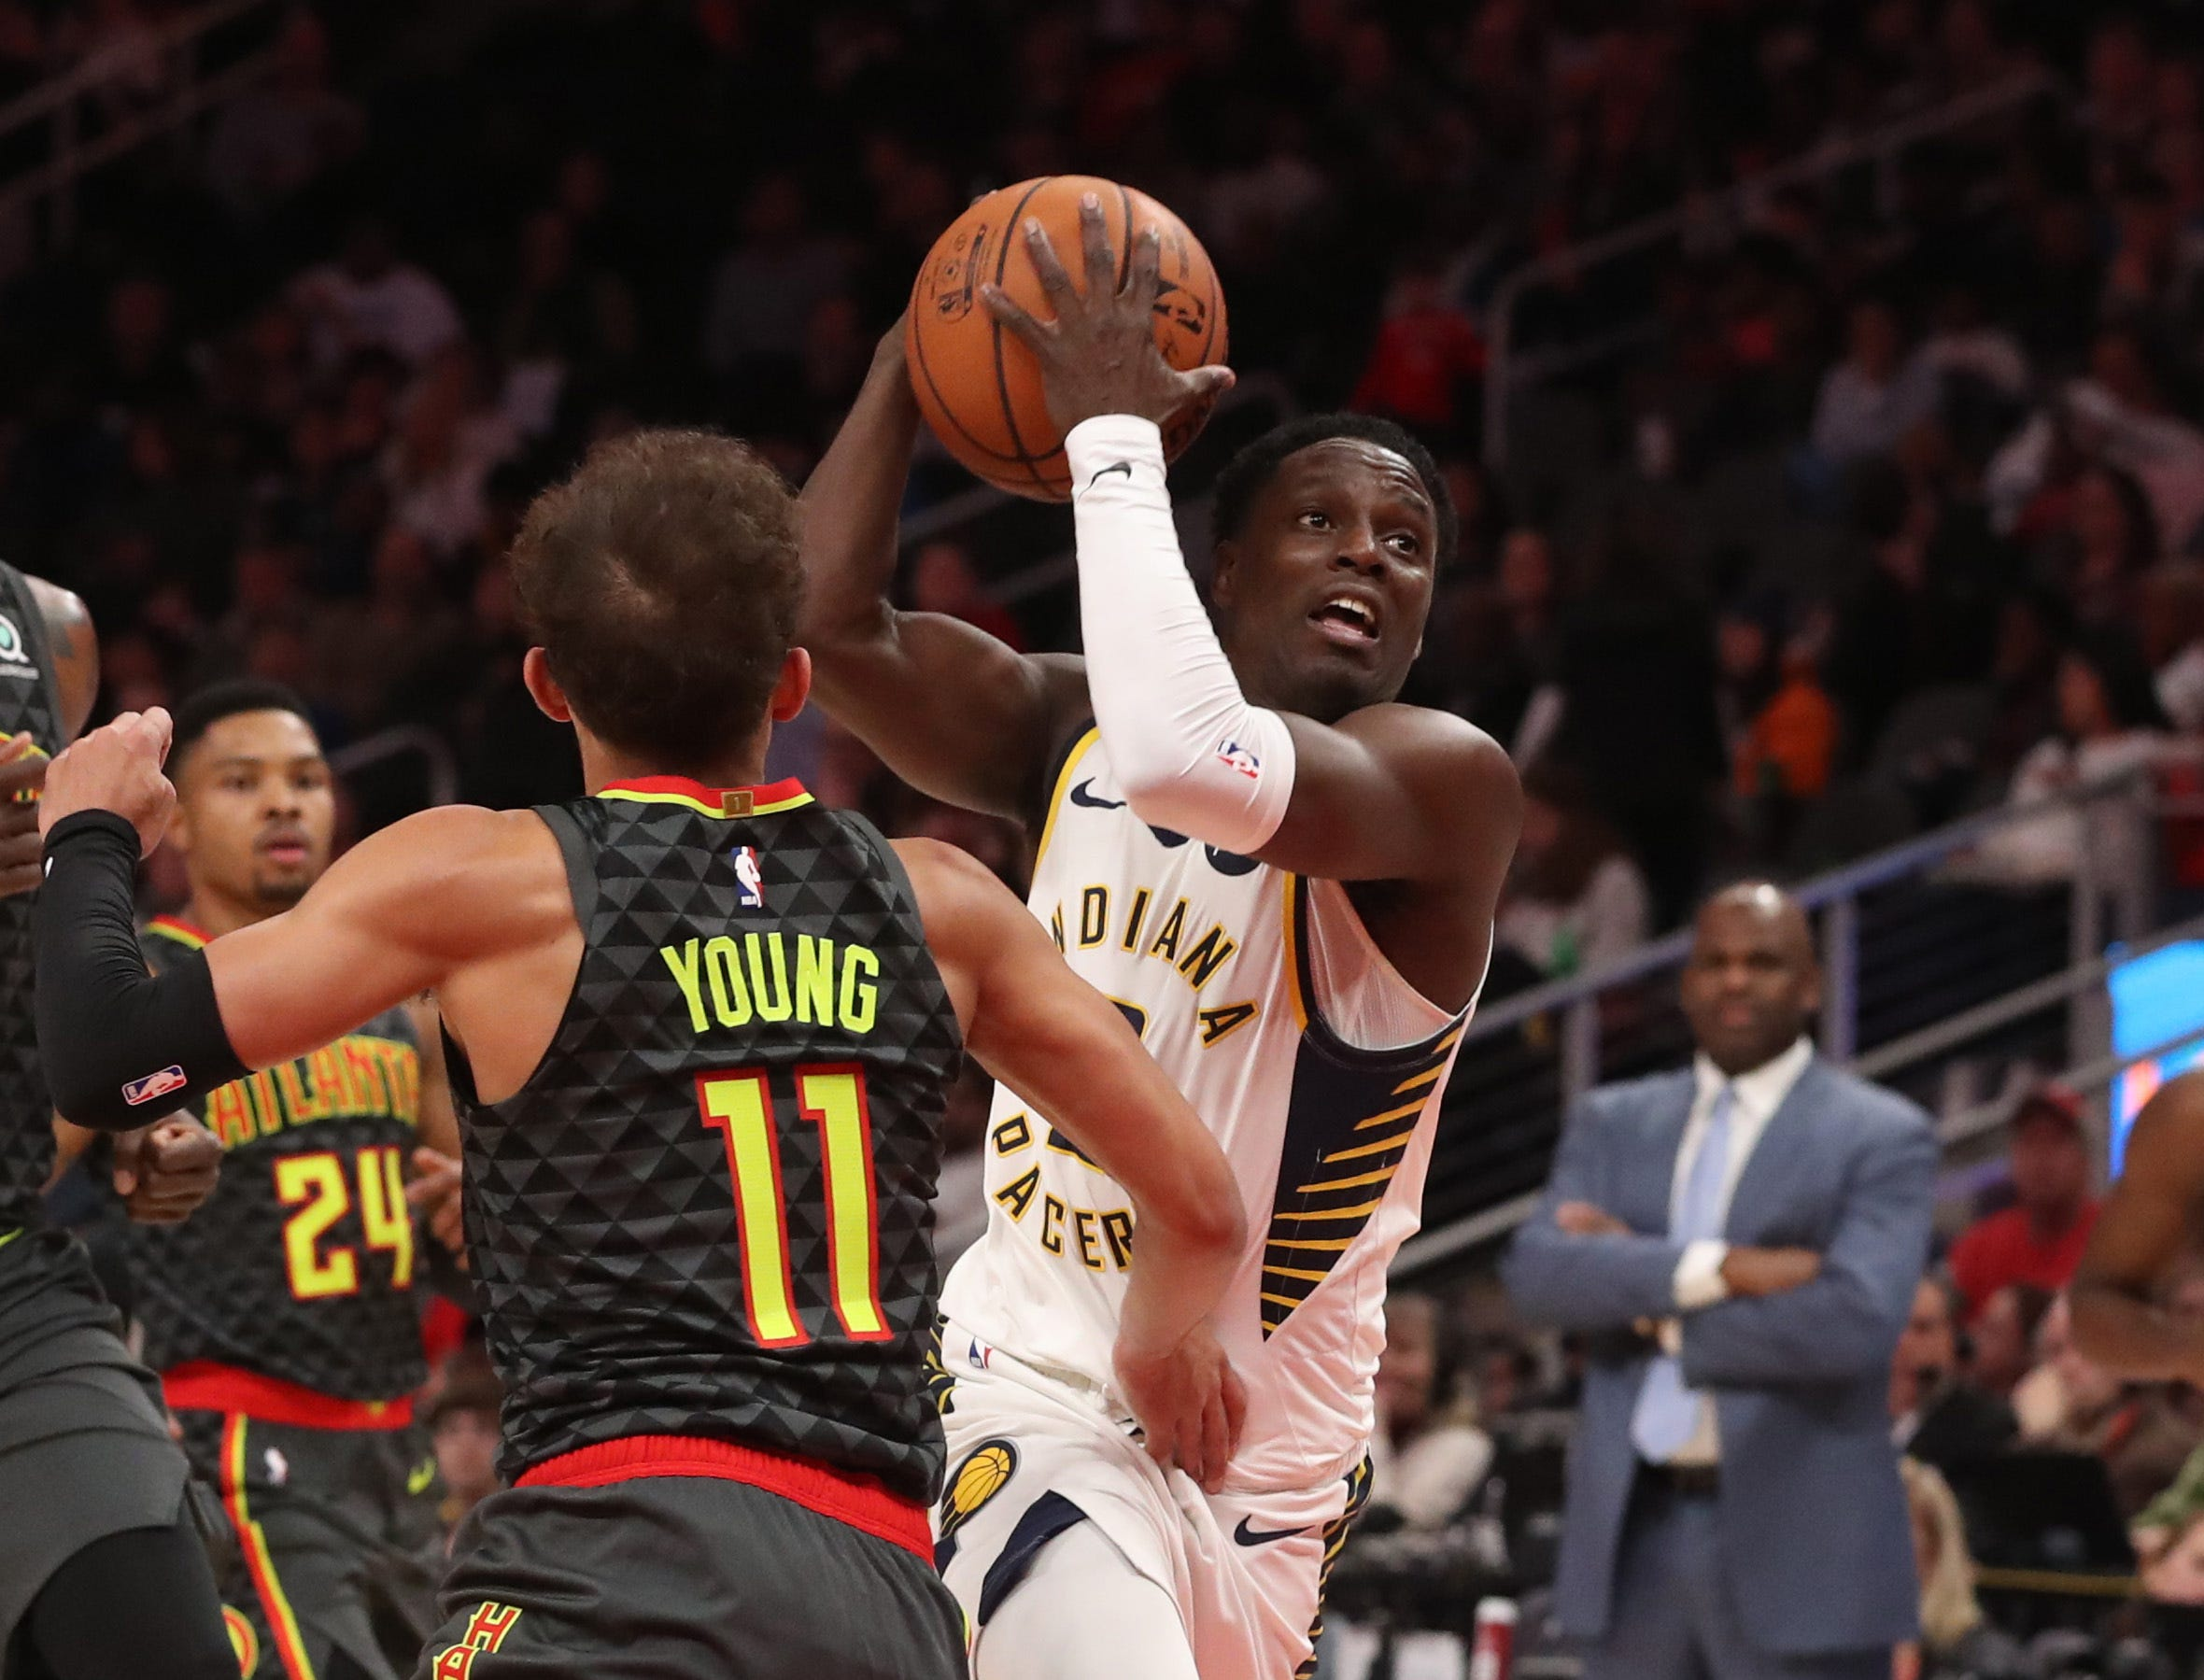 Dec 26, 2018; Atlanta, GA, USA; Indiana Pacers guard Darren Collison (2) drives against Atlanta Hawks guard Trae Young (11) in the first quarter at State Farm Arena. Mandatory Credit: Jason Getz-USA TODAY Sports